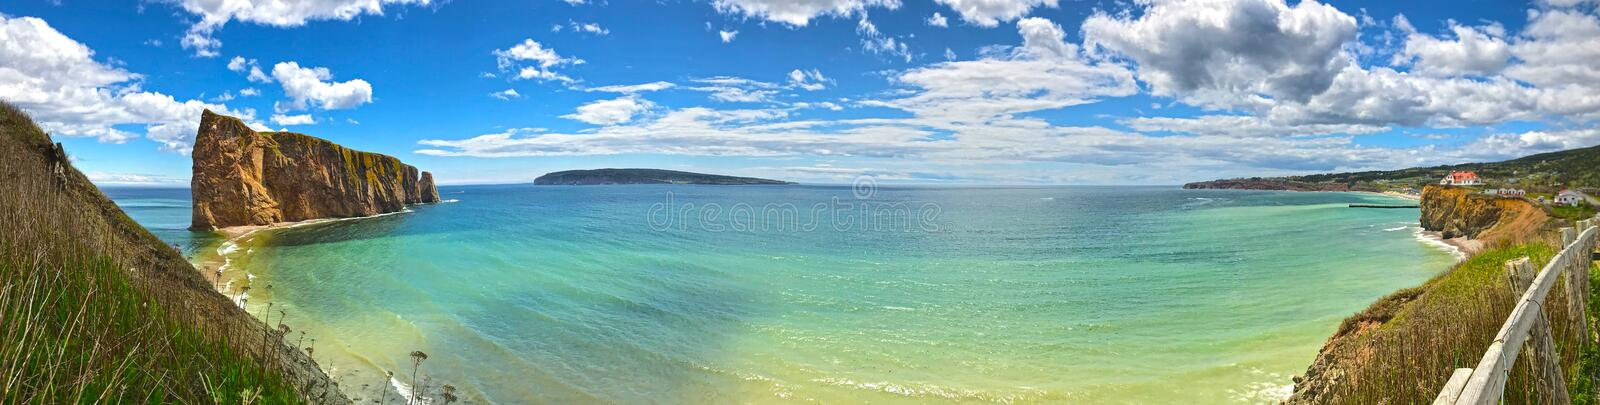 Panoramic view of Percé Rock and Bonaventure Island. royalty free stock image